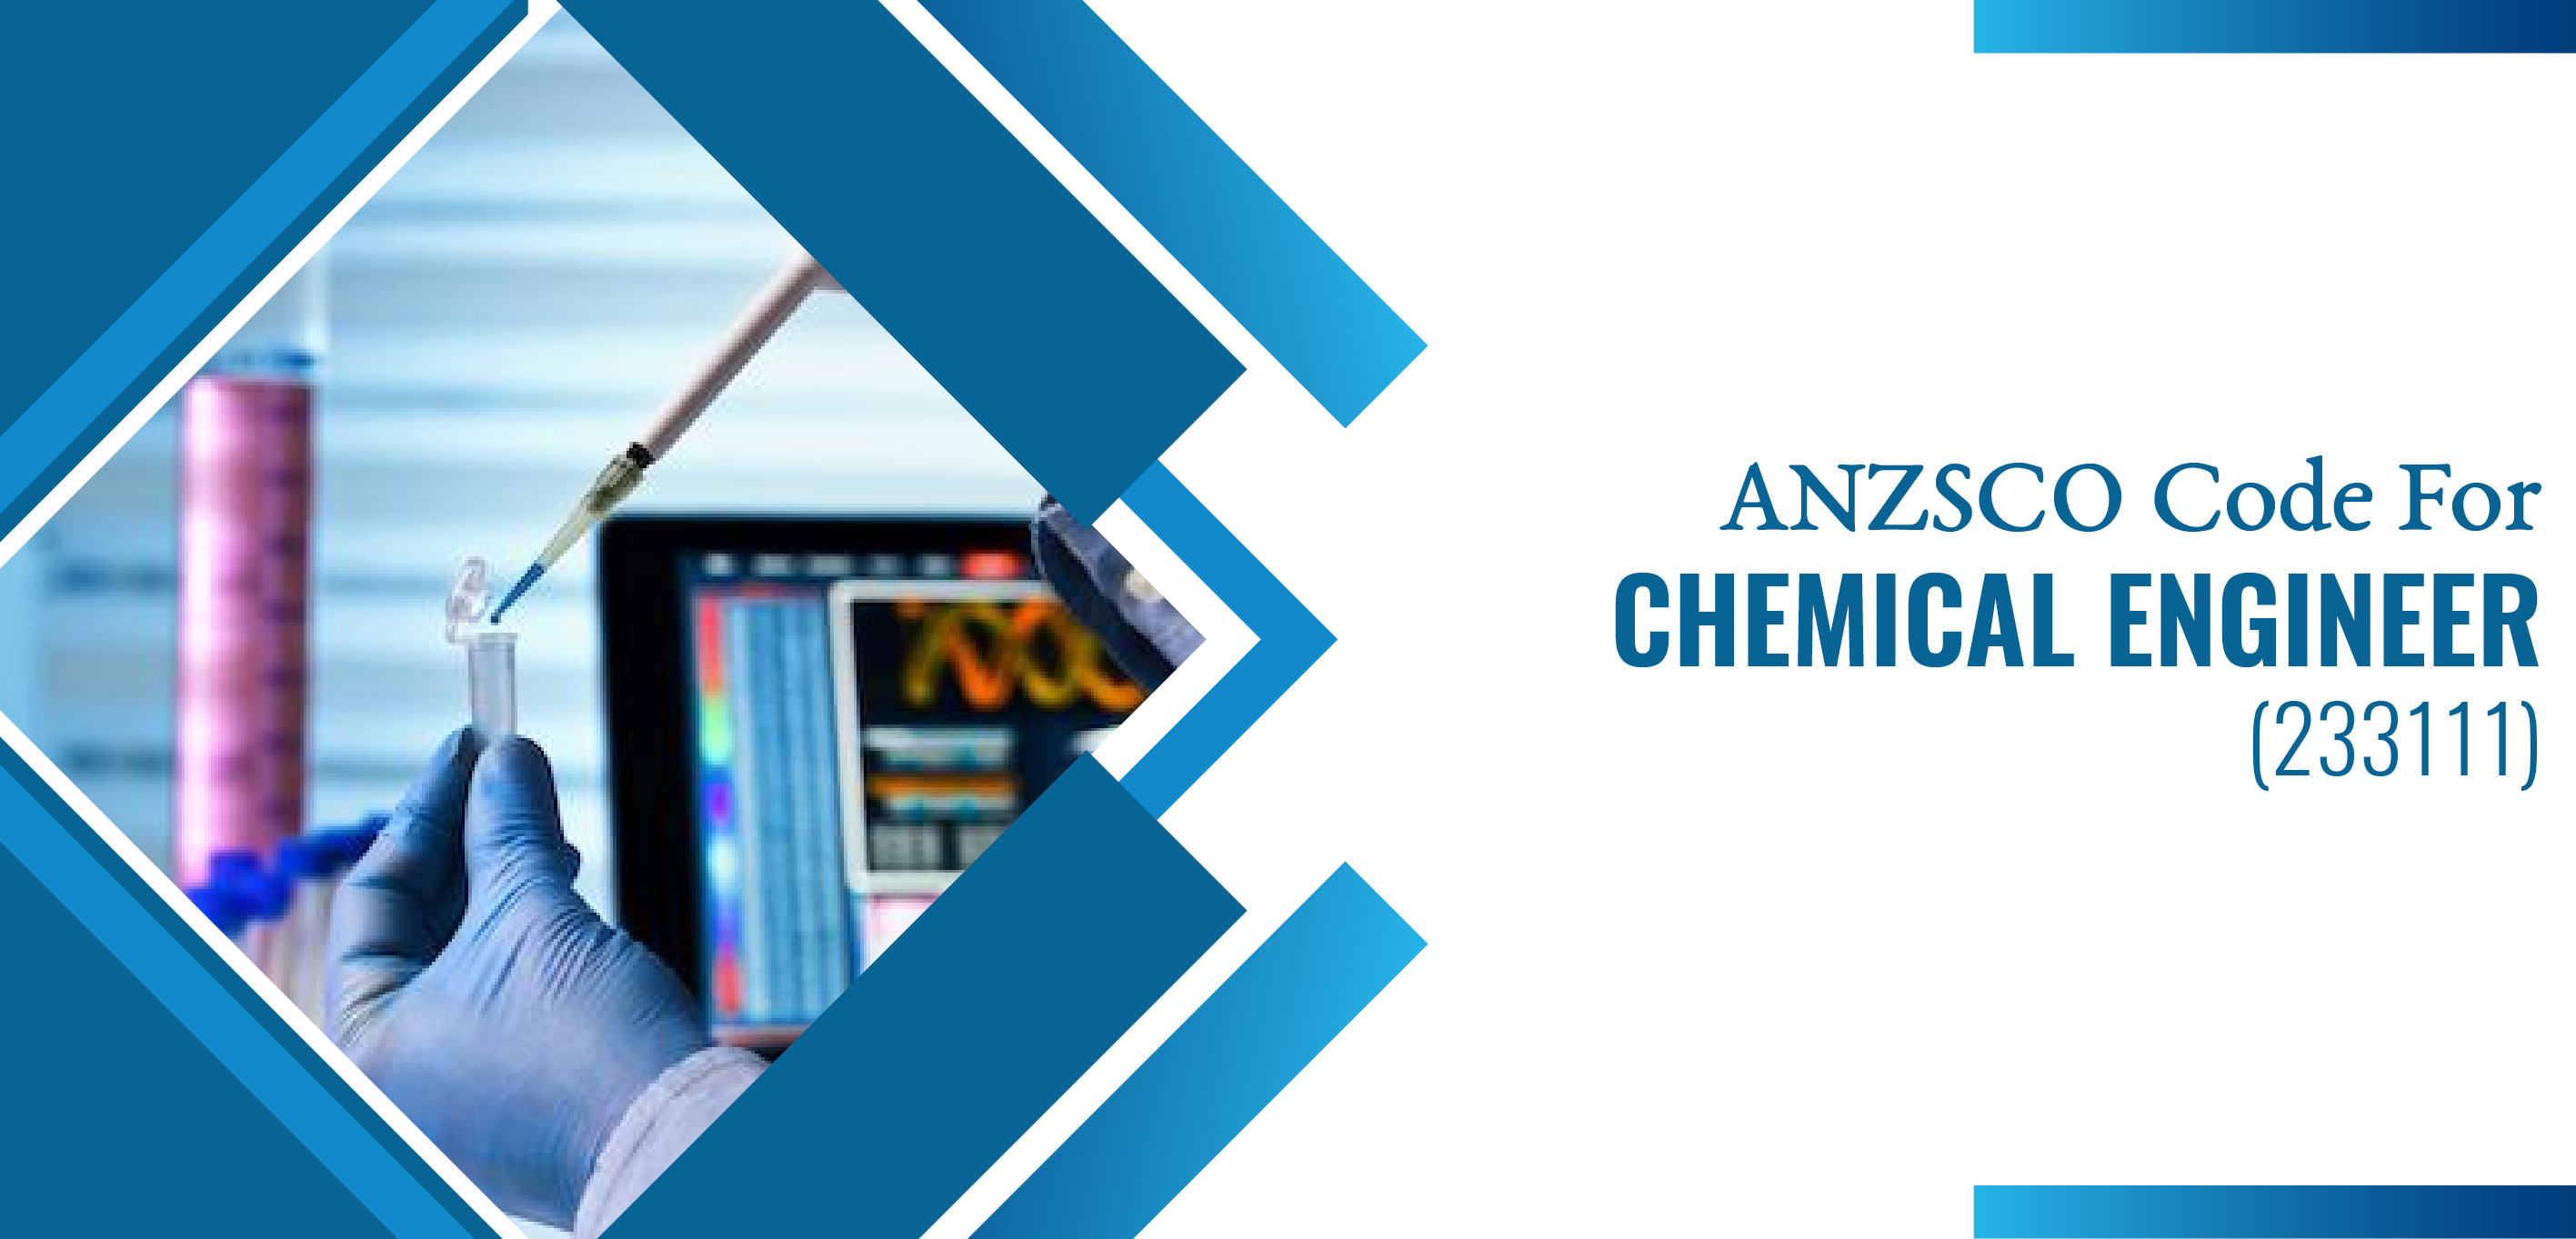 ANZSCO Code for Chemical Engineer